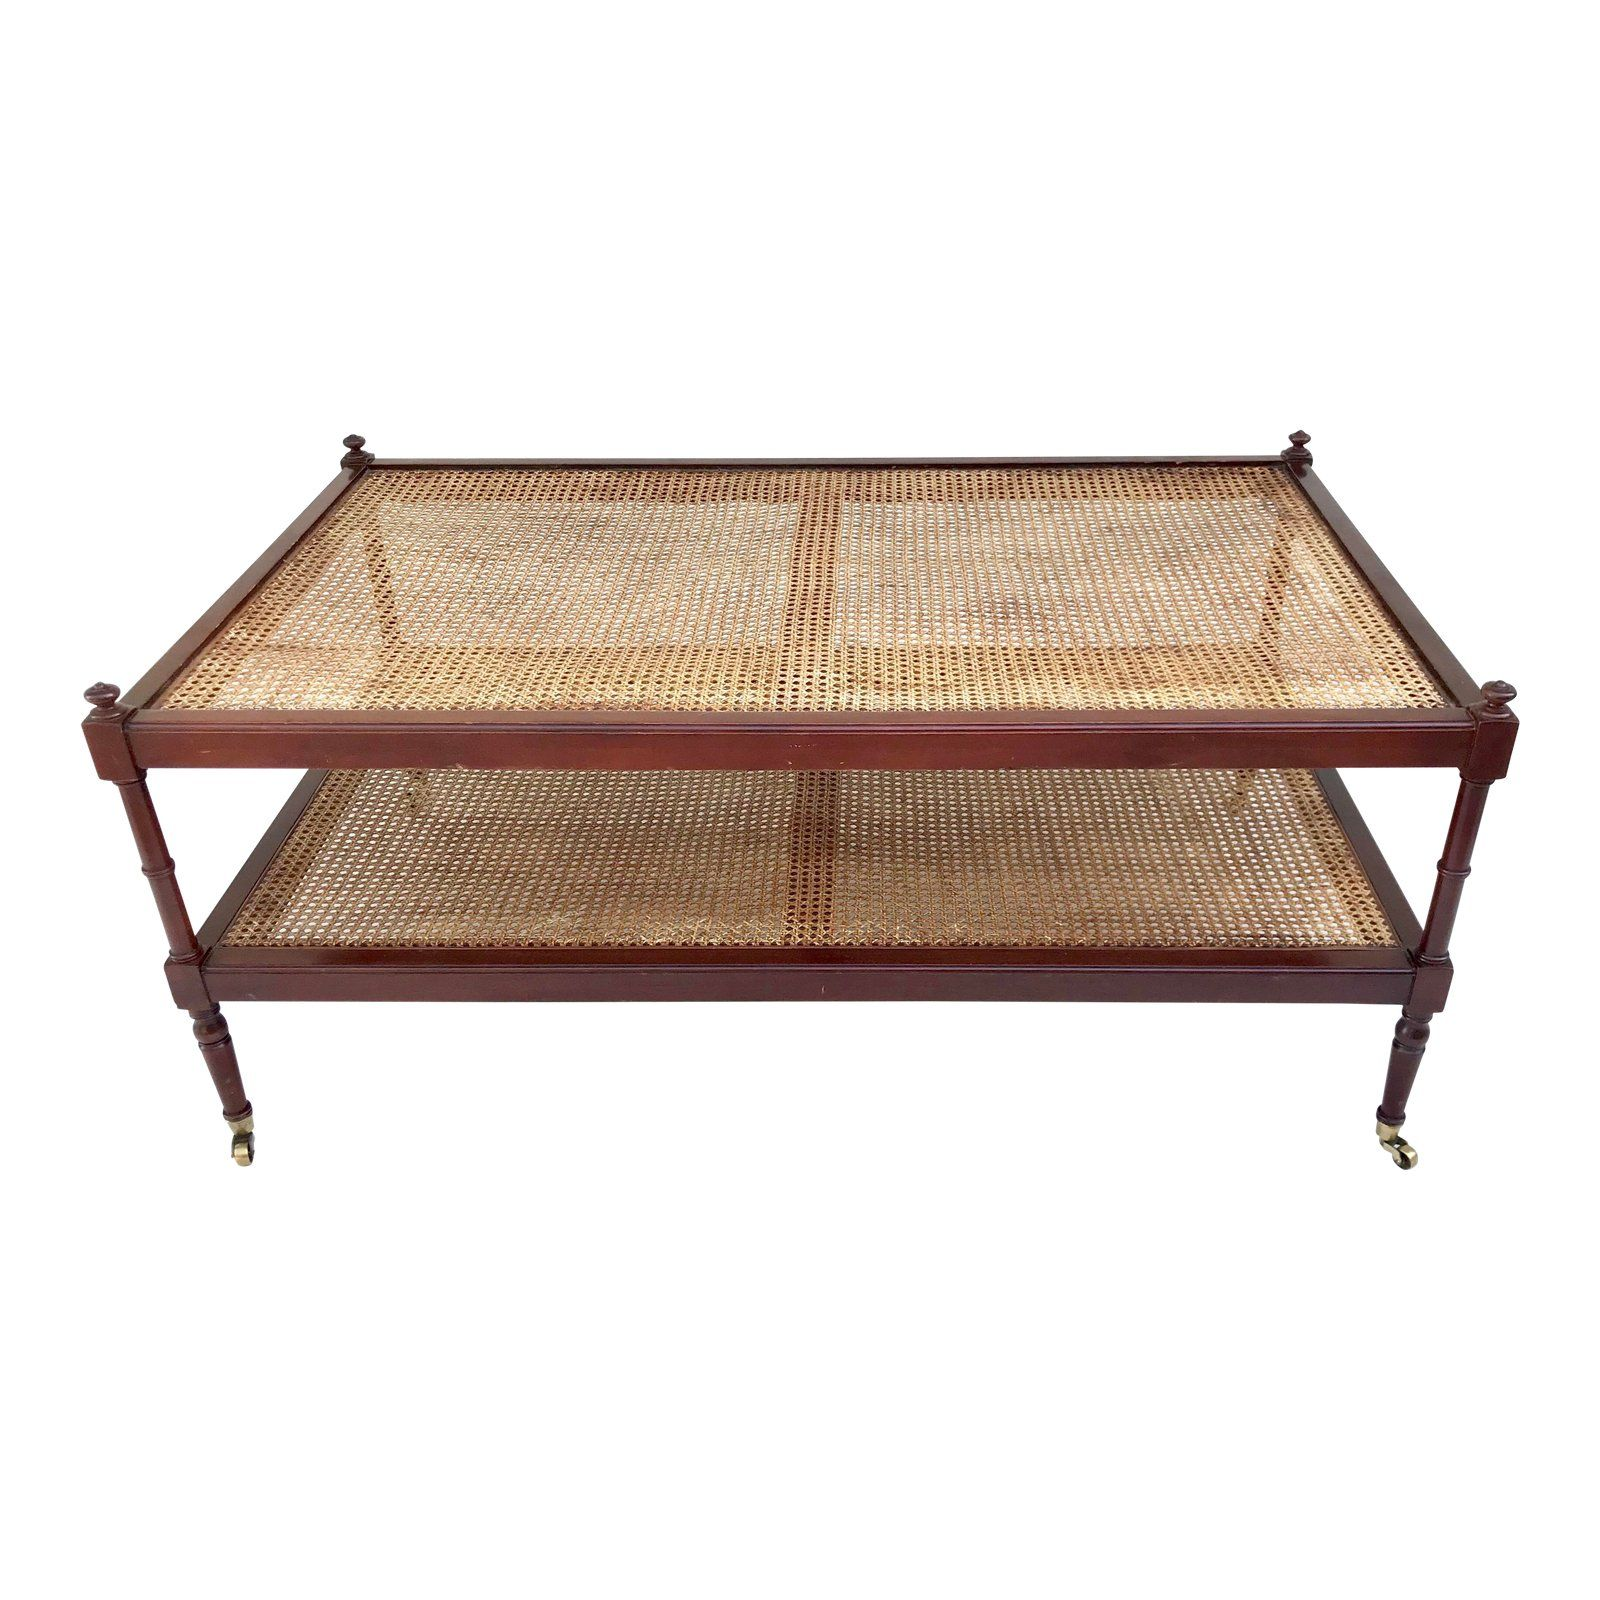 A Gorgeous Mahogany And Cane Coffee Table This Table Is In Beautiful Vintage Condition Show Large Square Coffee Table Coffee Table Wood Coffee Table Furniture [ 1600 x 1600 Pixel ]